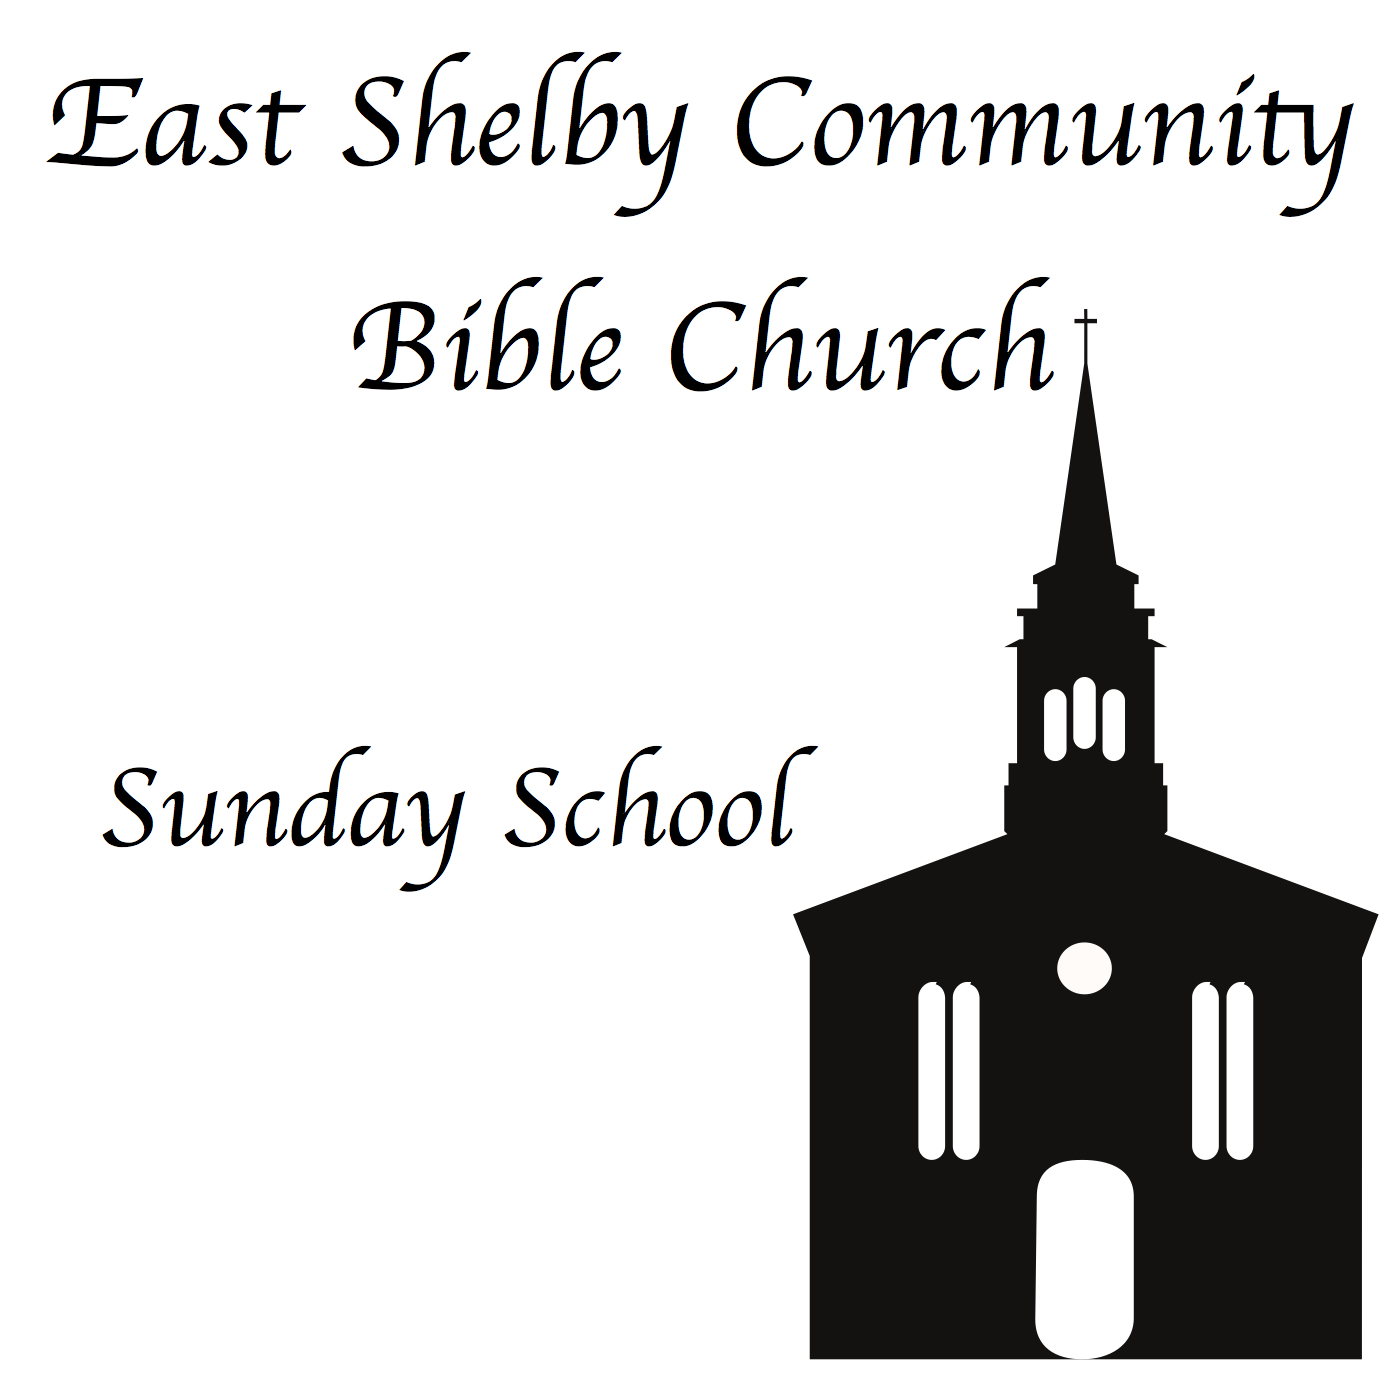 Sunday School - East Shelby Community Bible Church